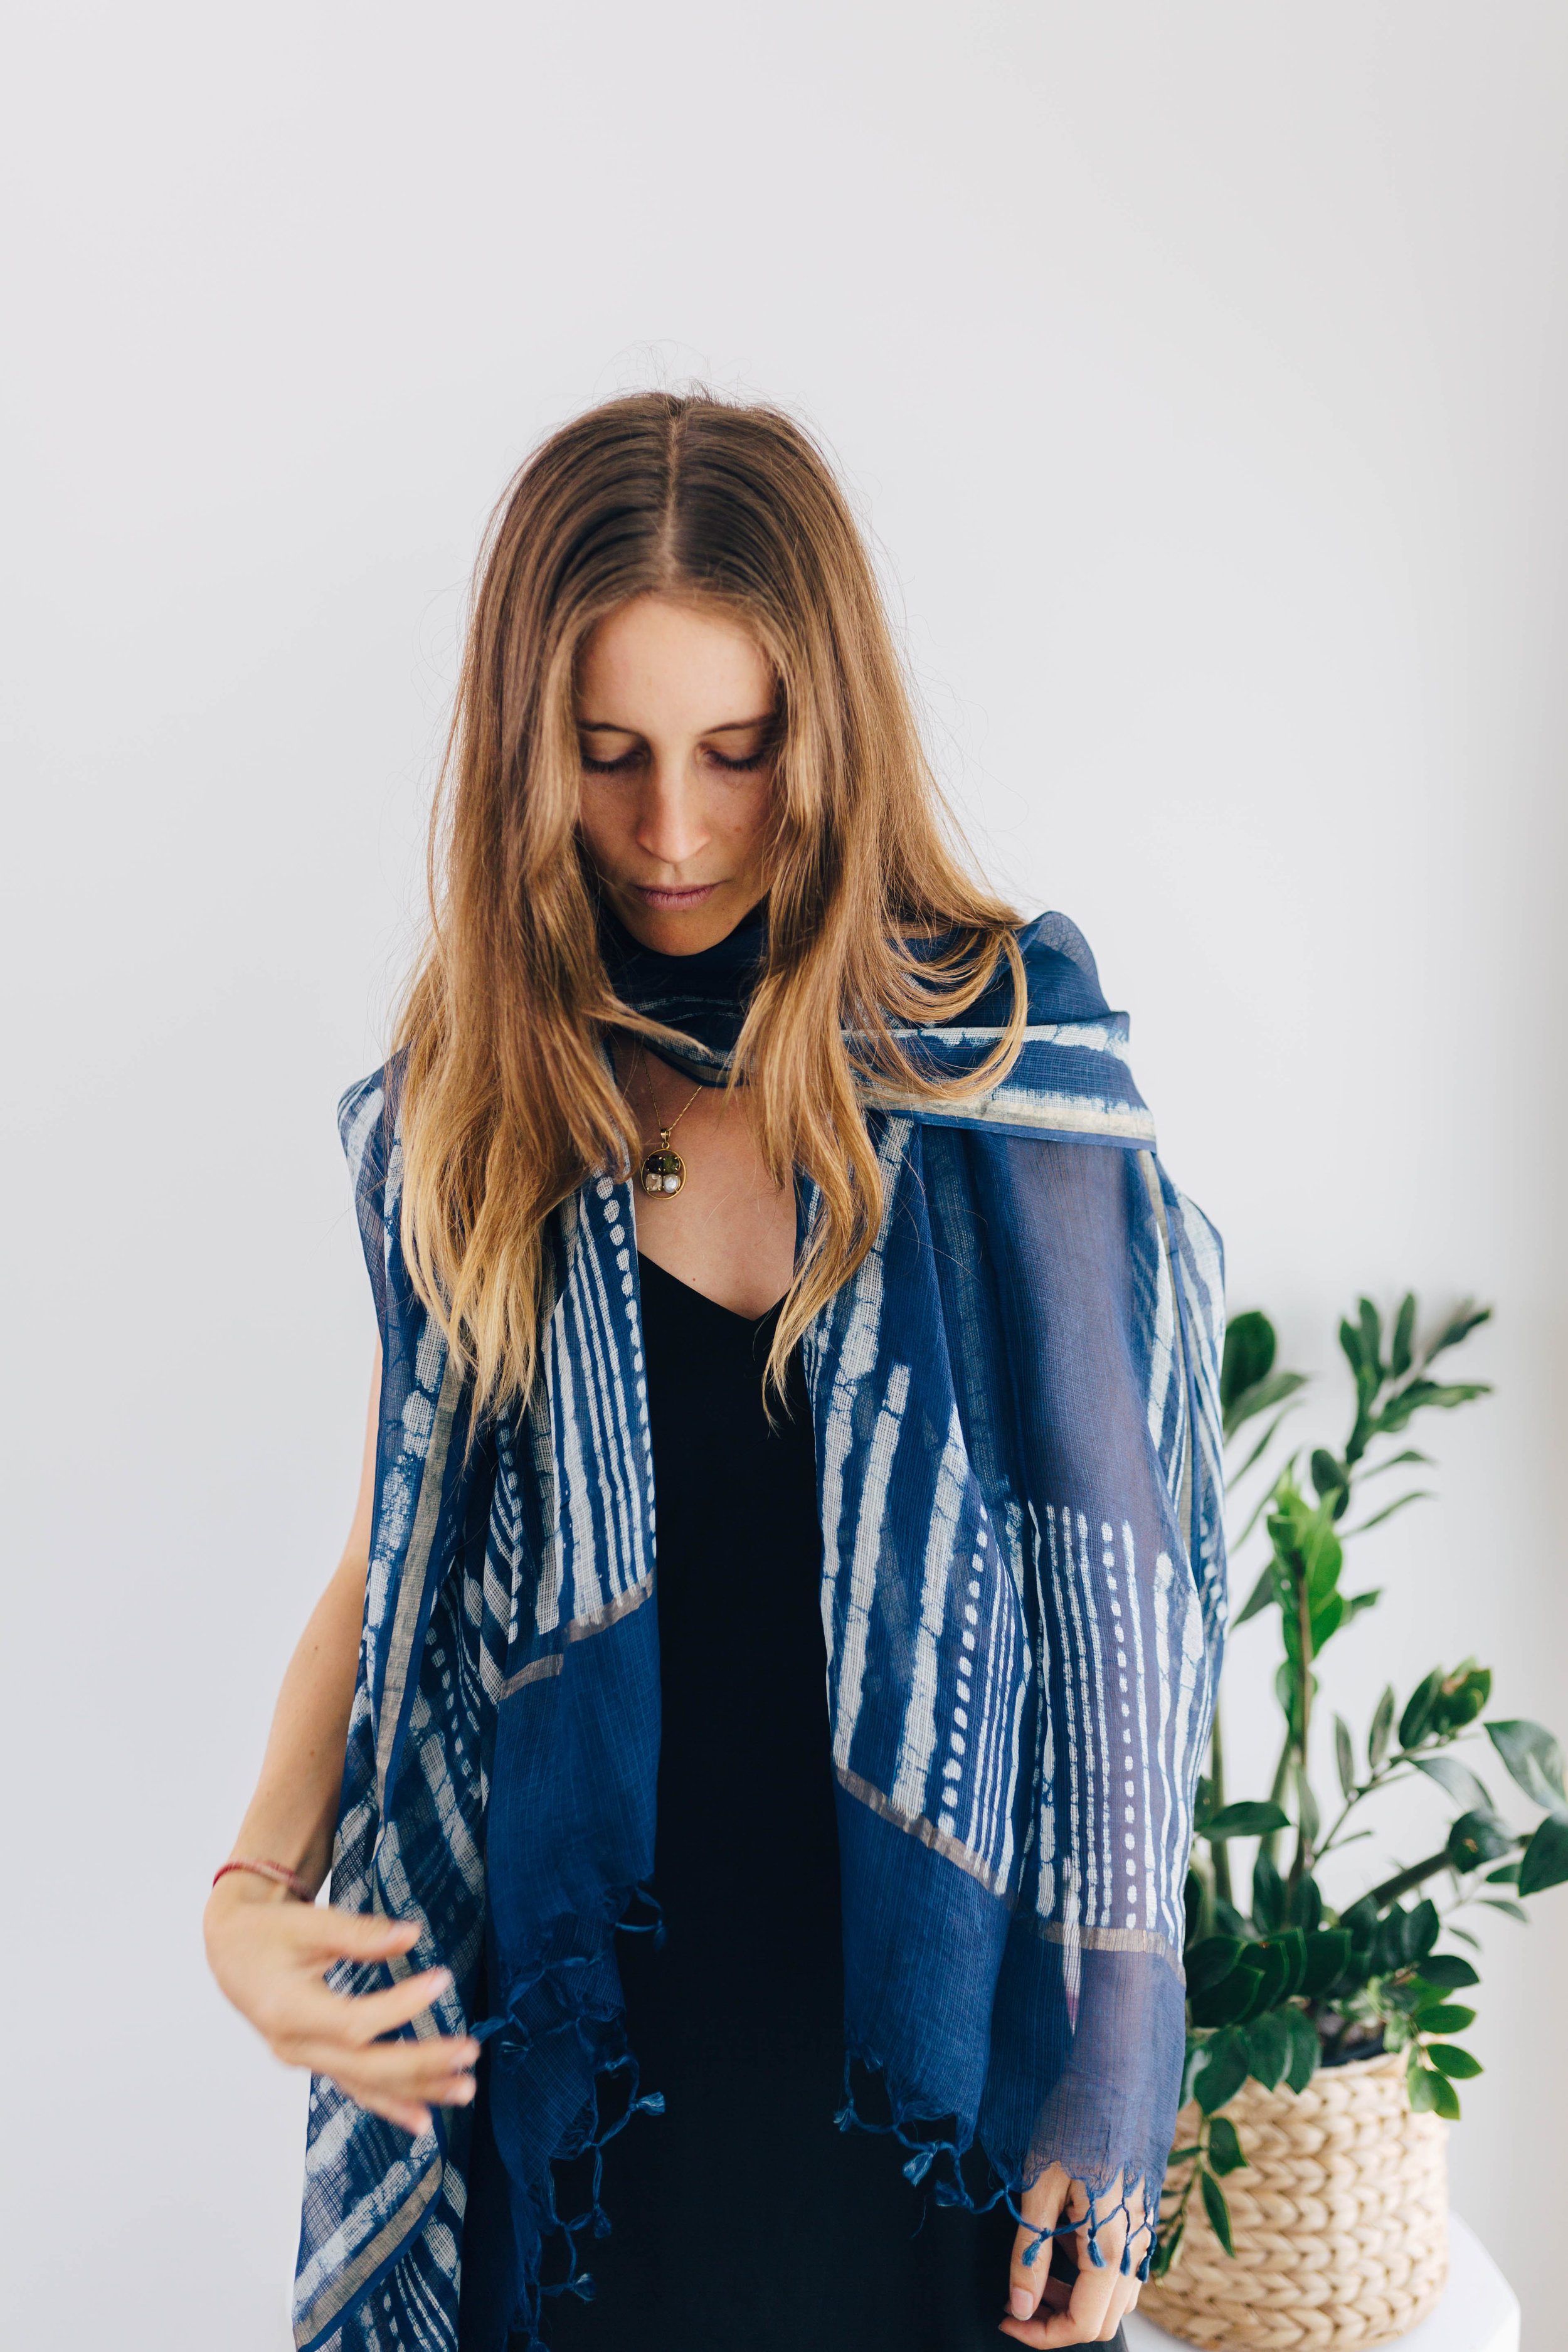 --- $100 gift ---- + Stunning pure silk indigo hand printed scarf from India with gold foiling (it's very long and wide - see next photo for details!) + Jasmine incense + Copper Tongue Scraper